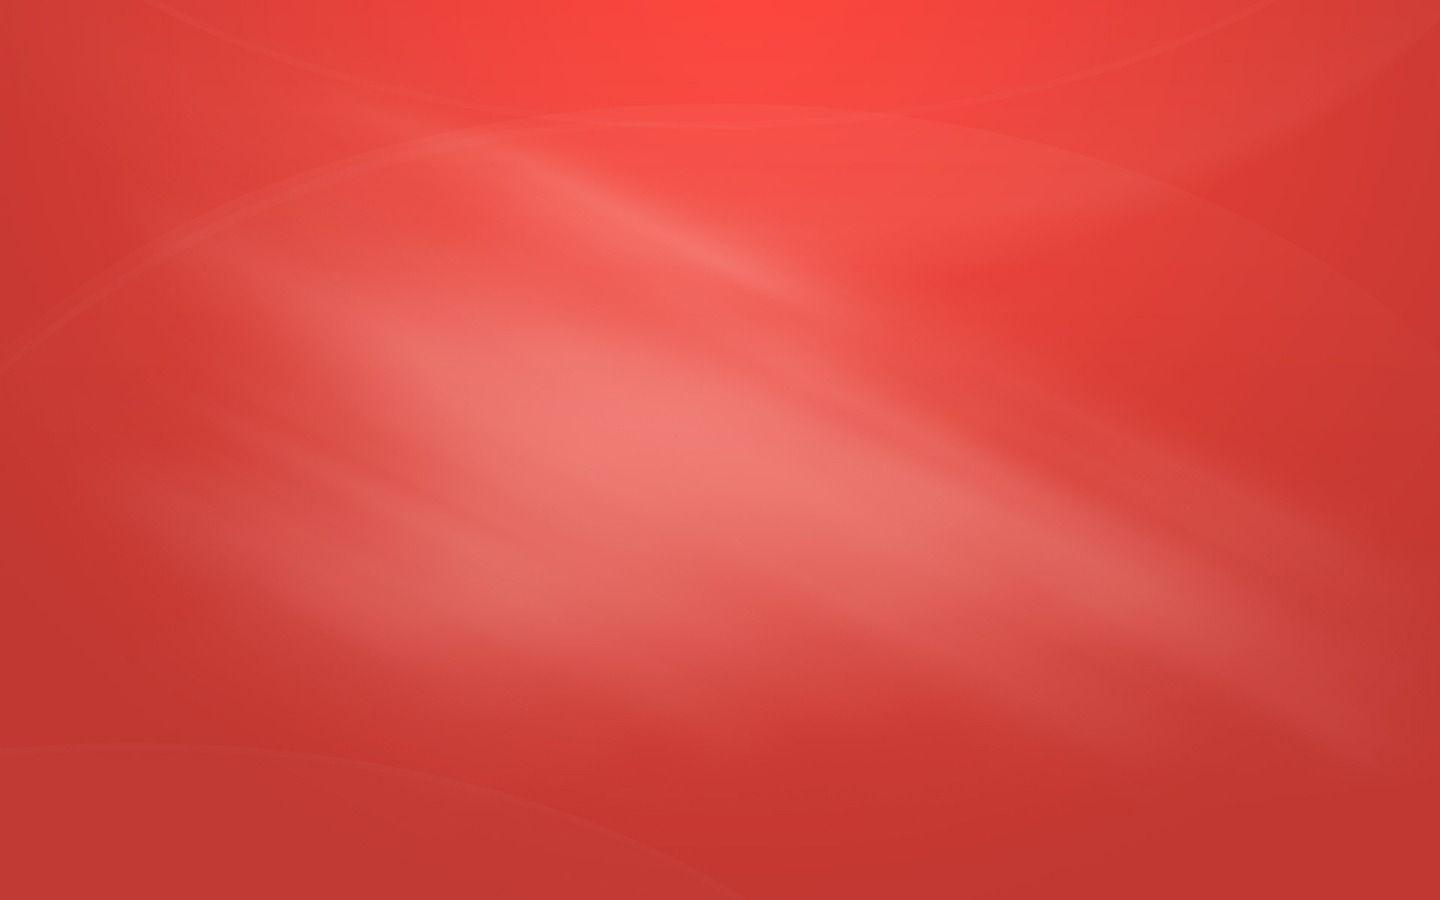 Light red wallpaper